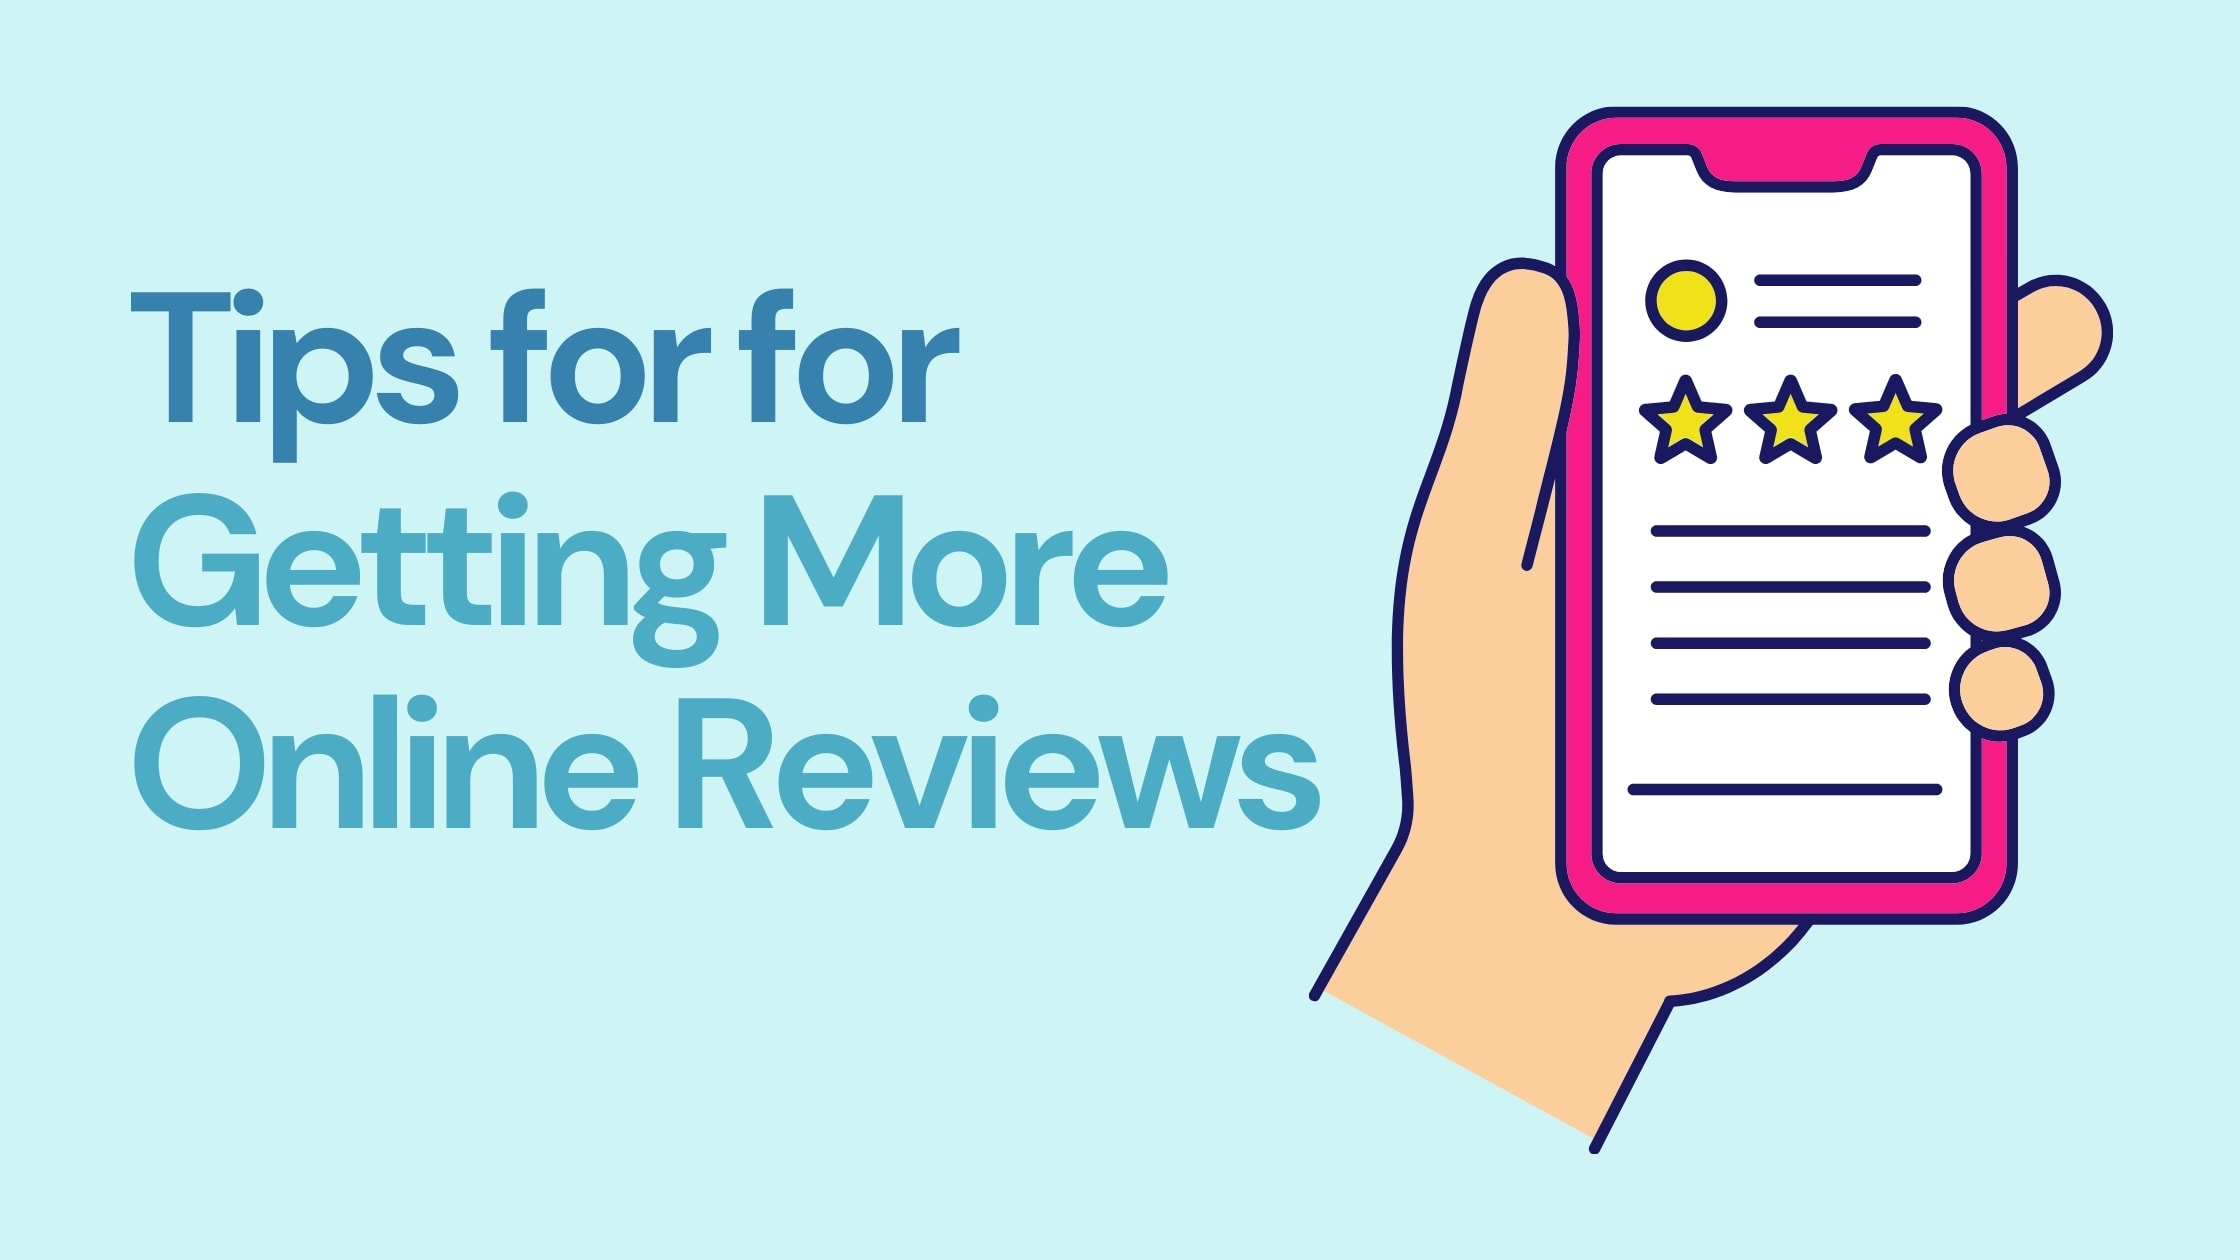 Tips for Getting More Online Reviews